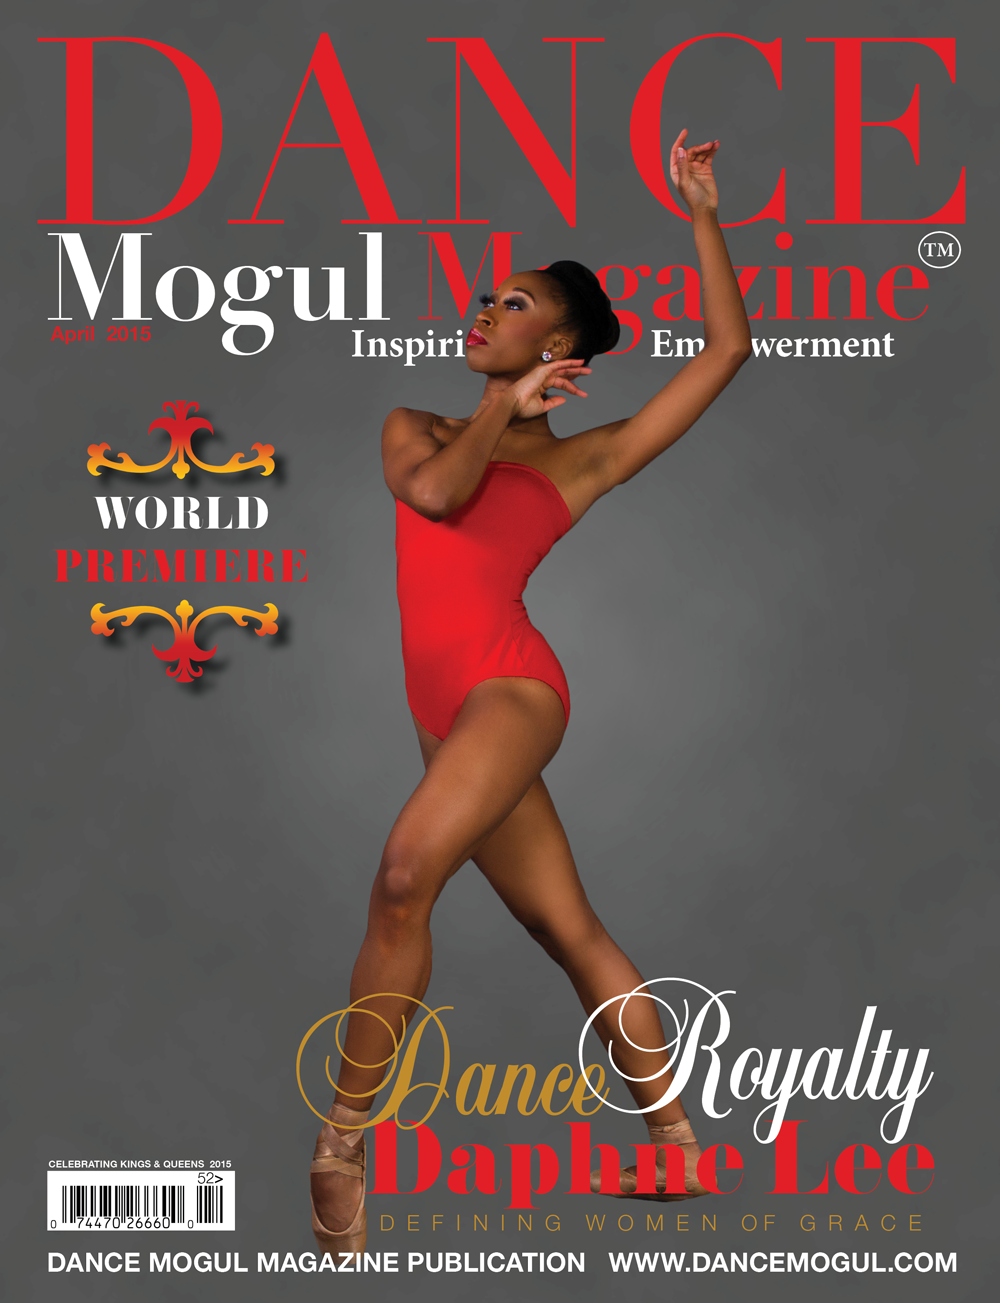 Dance Mogul Magazine Photo by Camara